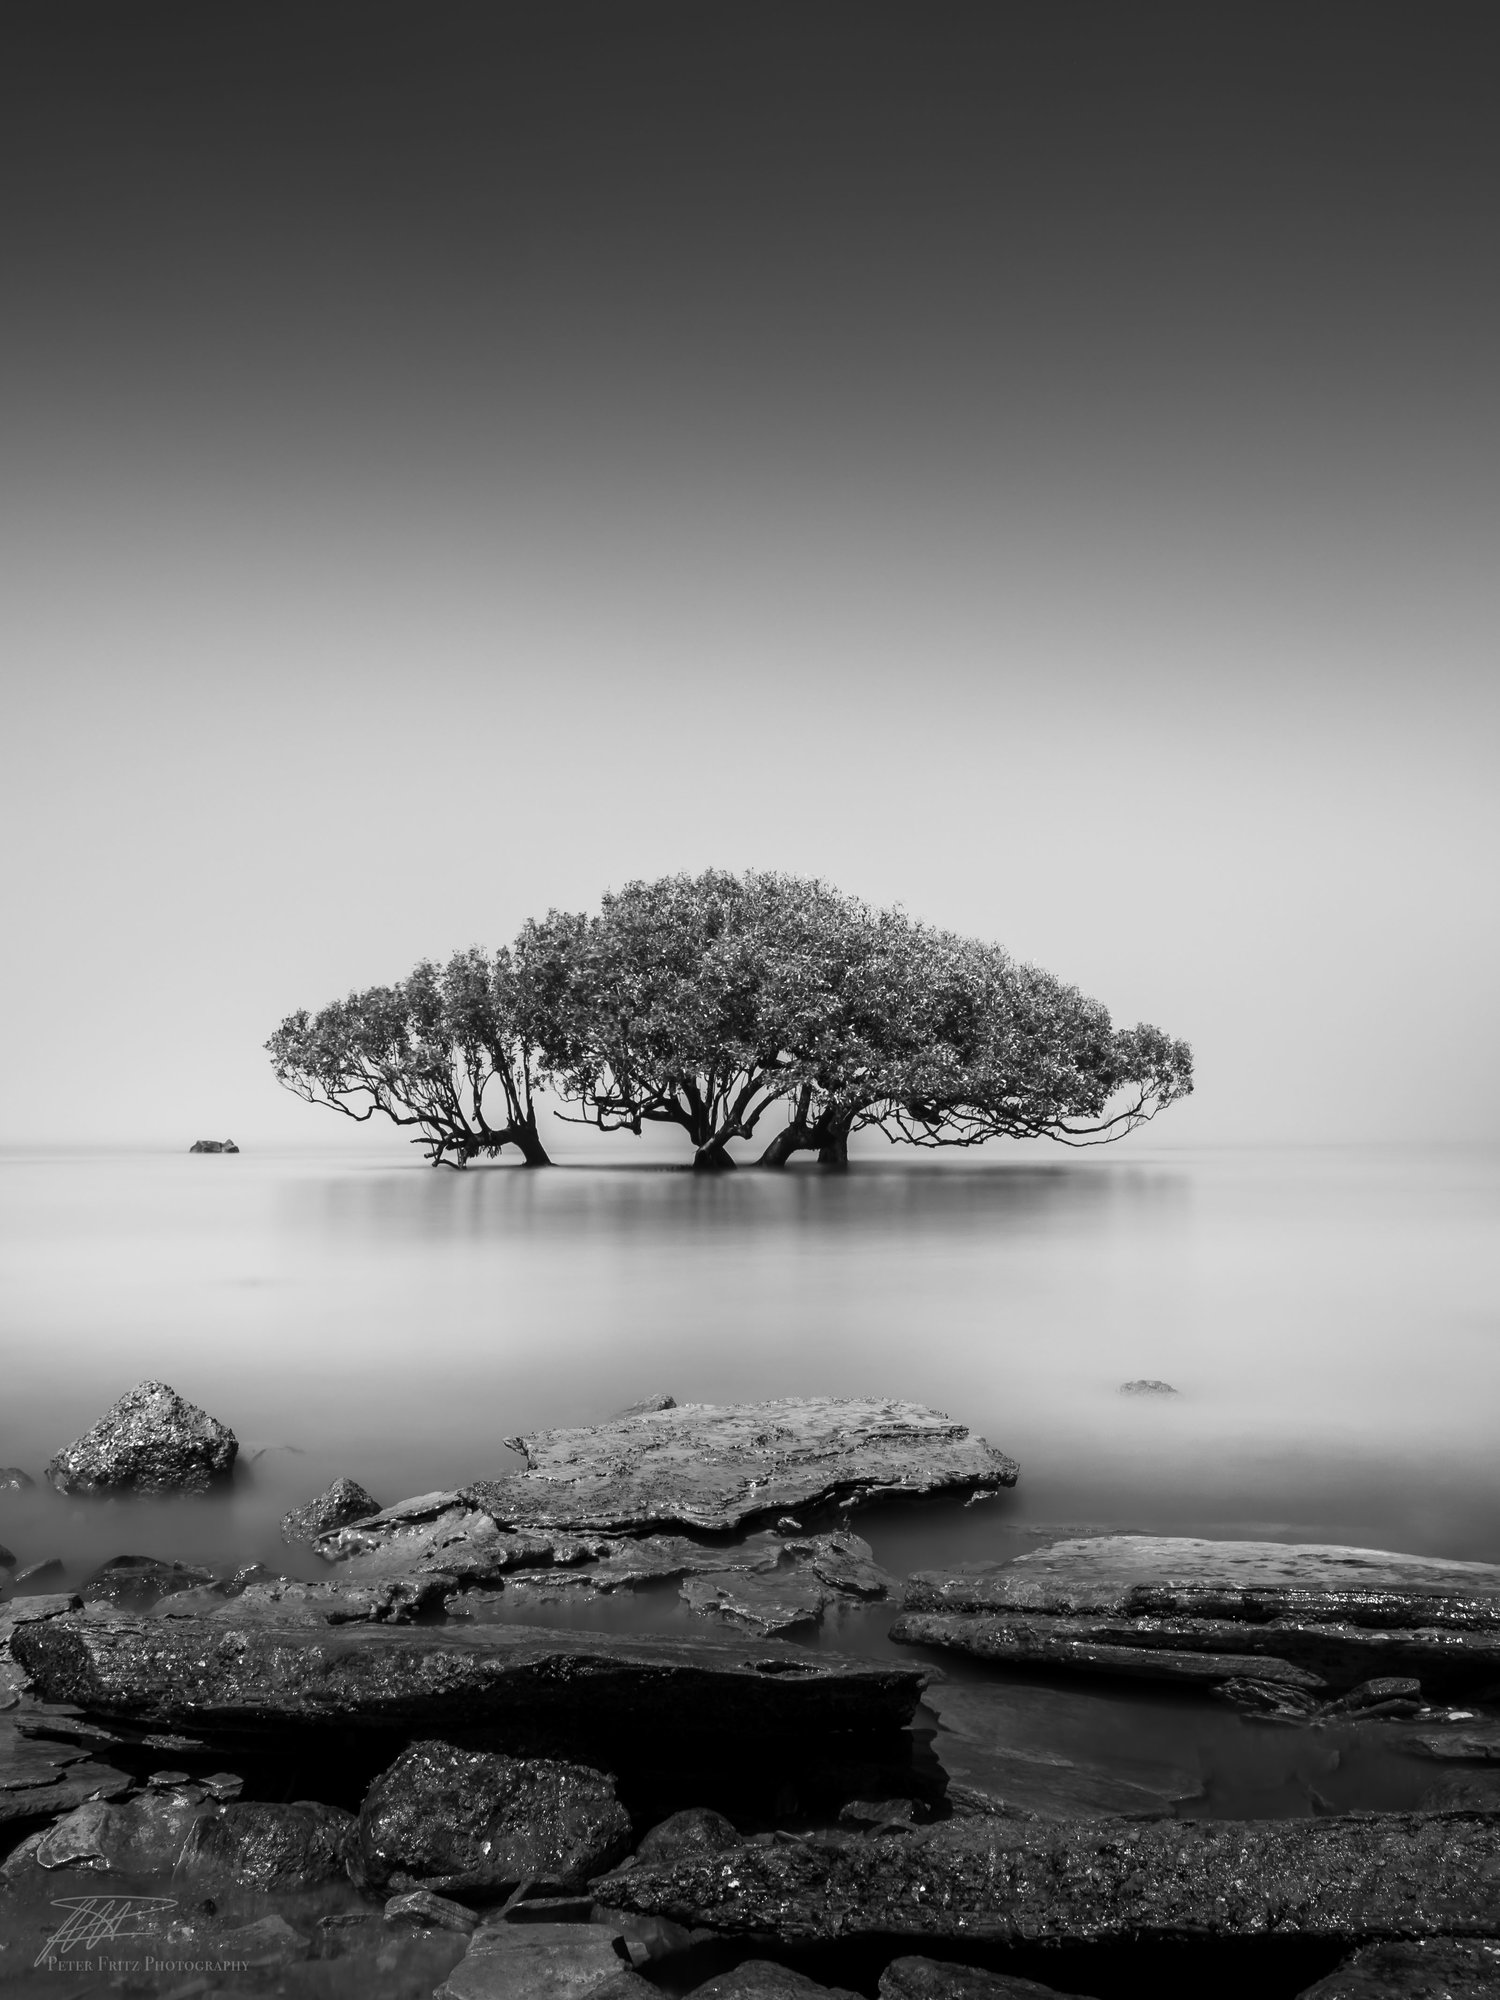 Alone in the fog bnw peter fritz black and white landscape photography